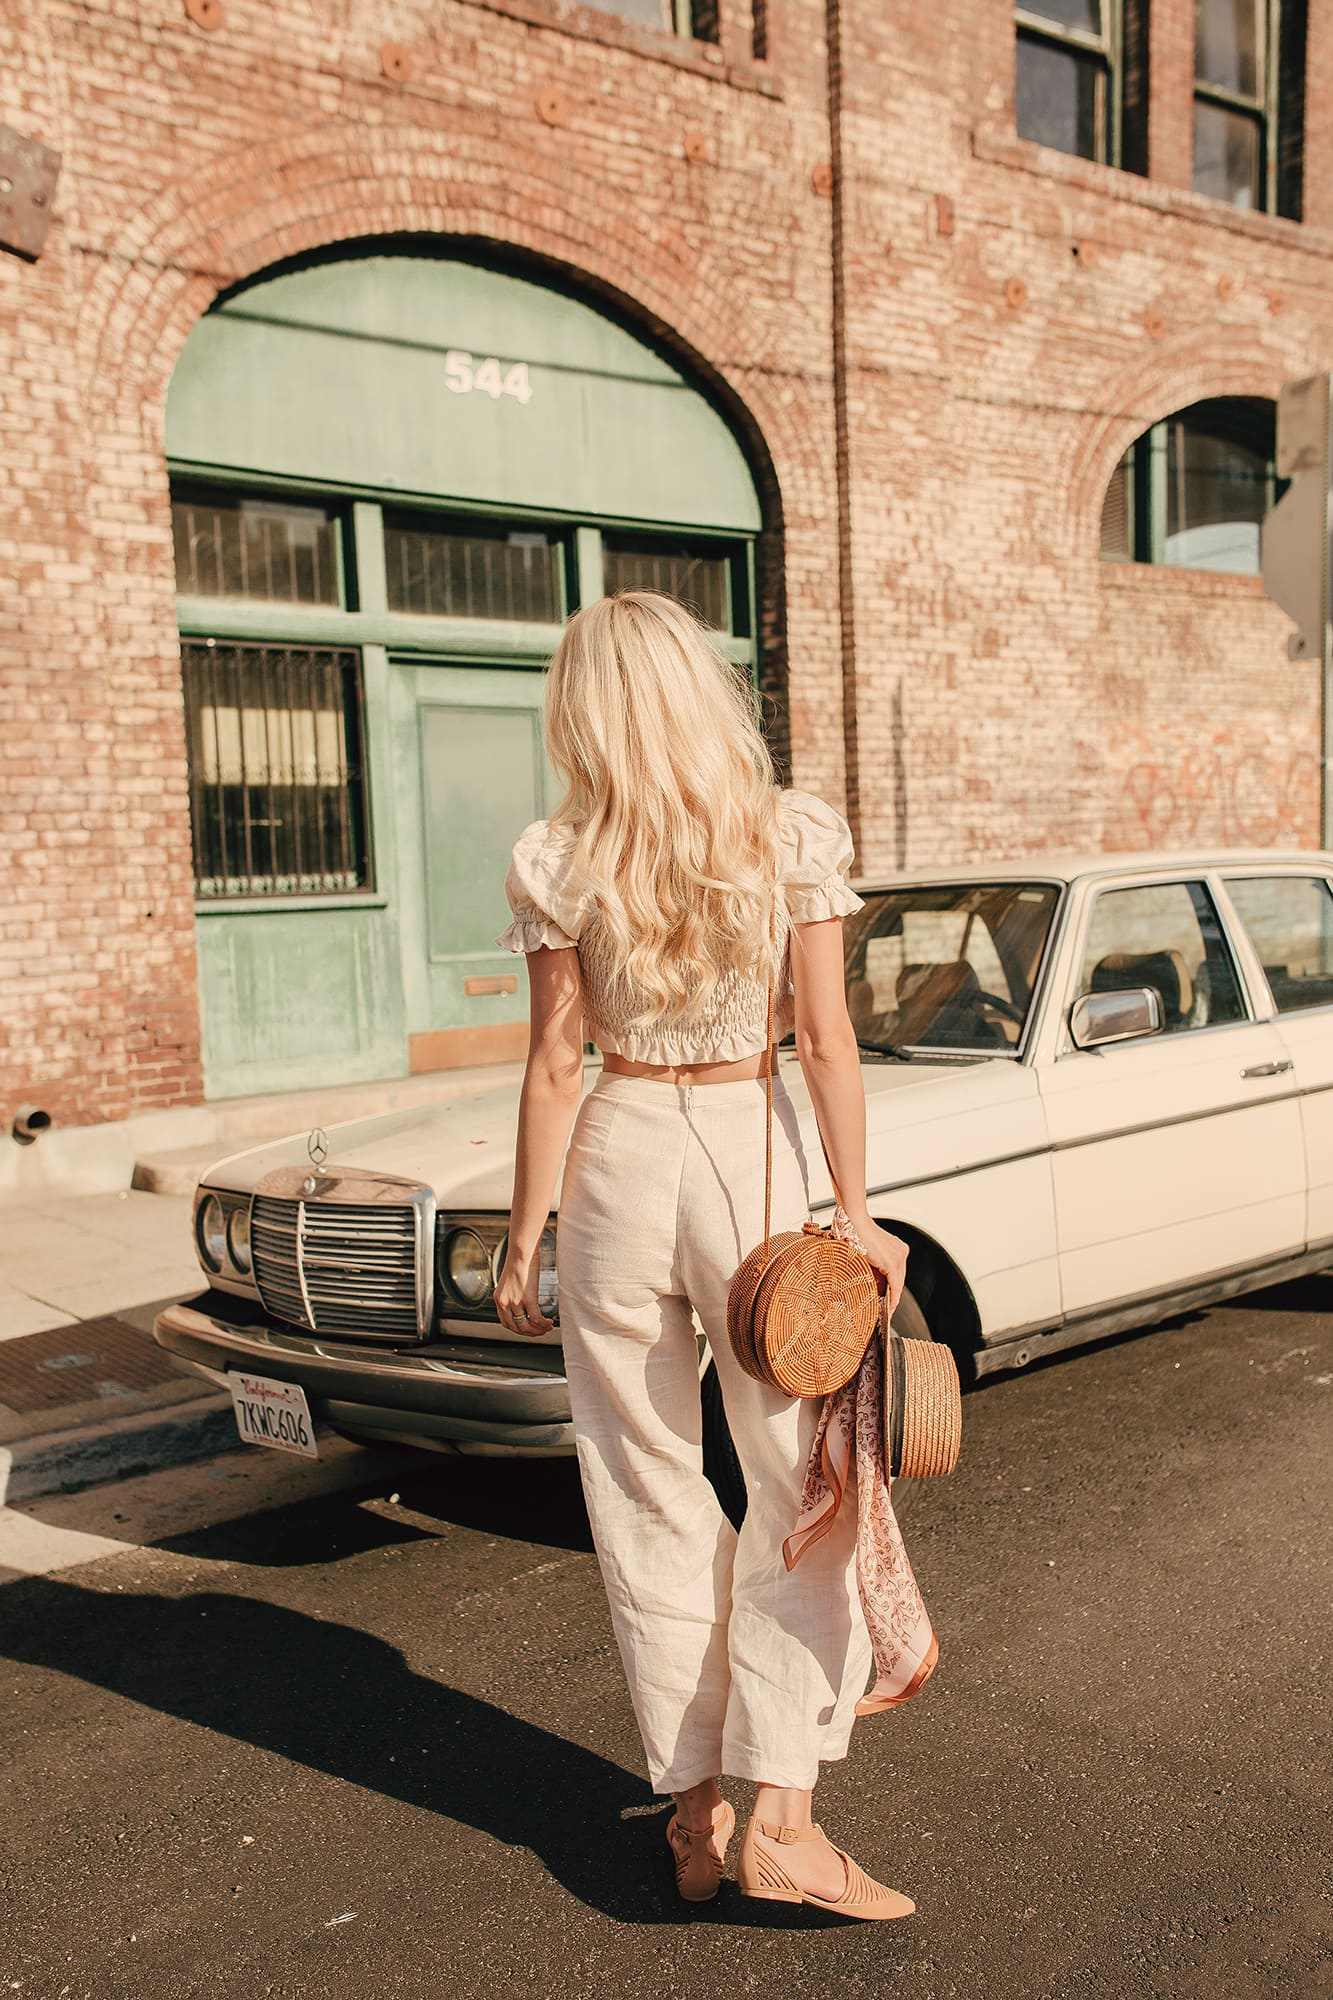 Blonde girl wearing vintage outfit in downtown LA next to vintage car